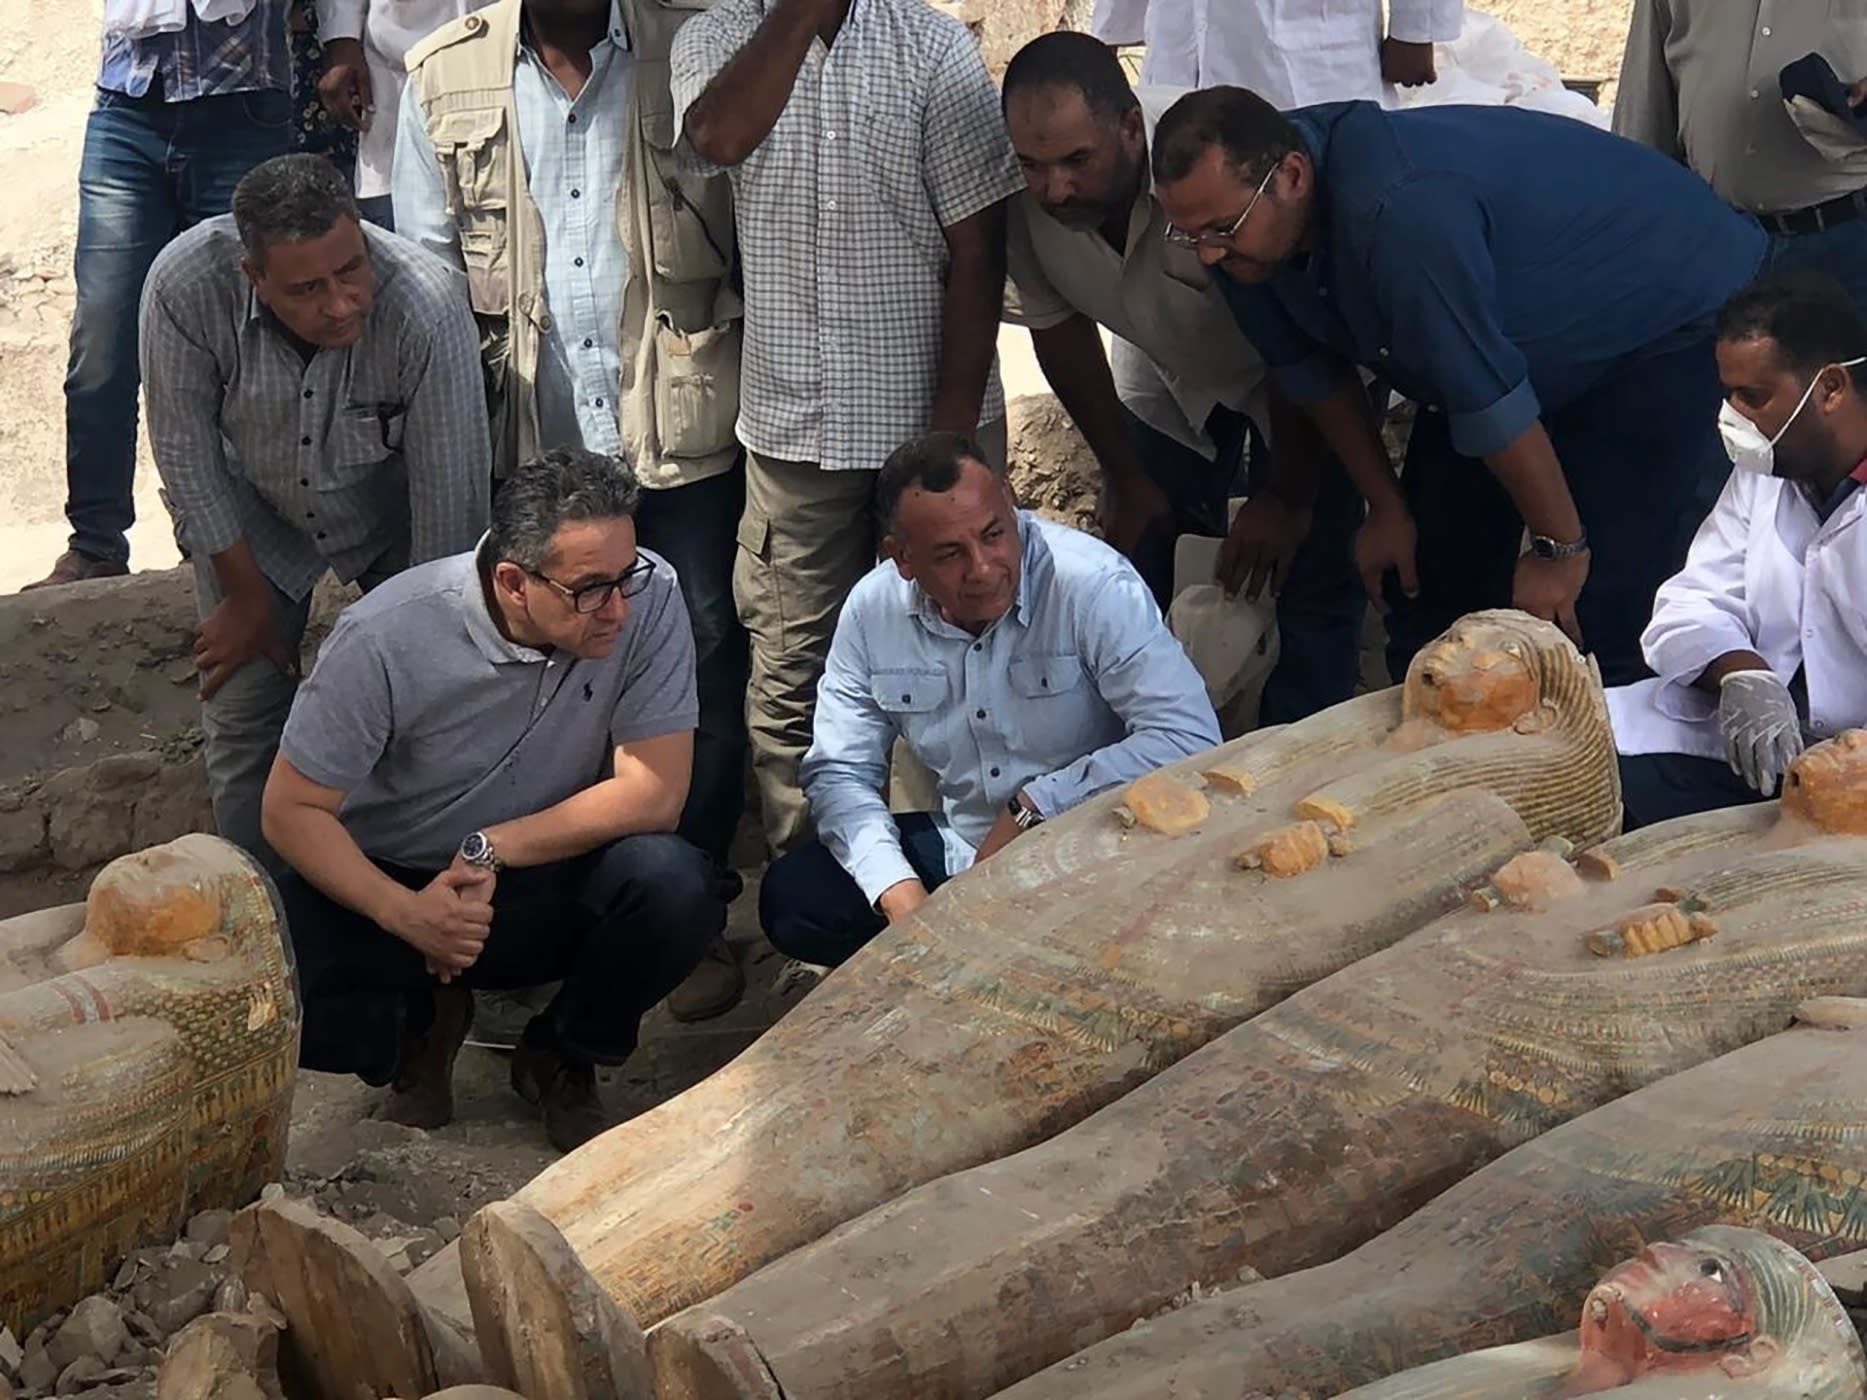 FILE - This Tuesday, Oct. 15, 2019 file photo provided by the Egyptian Ministry of Antiquities shows Egyptian Minister of Antiquities Khaled el-Anany, foreground left, looking at recently discovered ancient colored coffins with inscriptions and paintings, in the southern city of Luxor, Egypt. (Egyptian Ministry of Antiquities via AP, File)